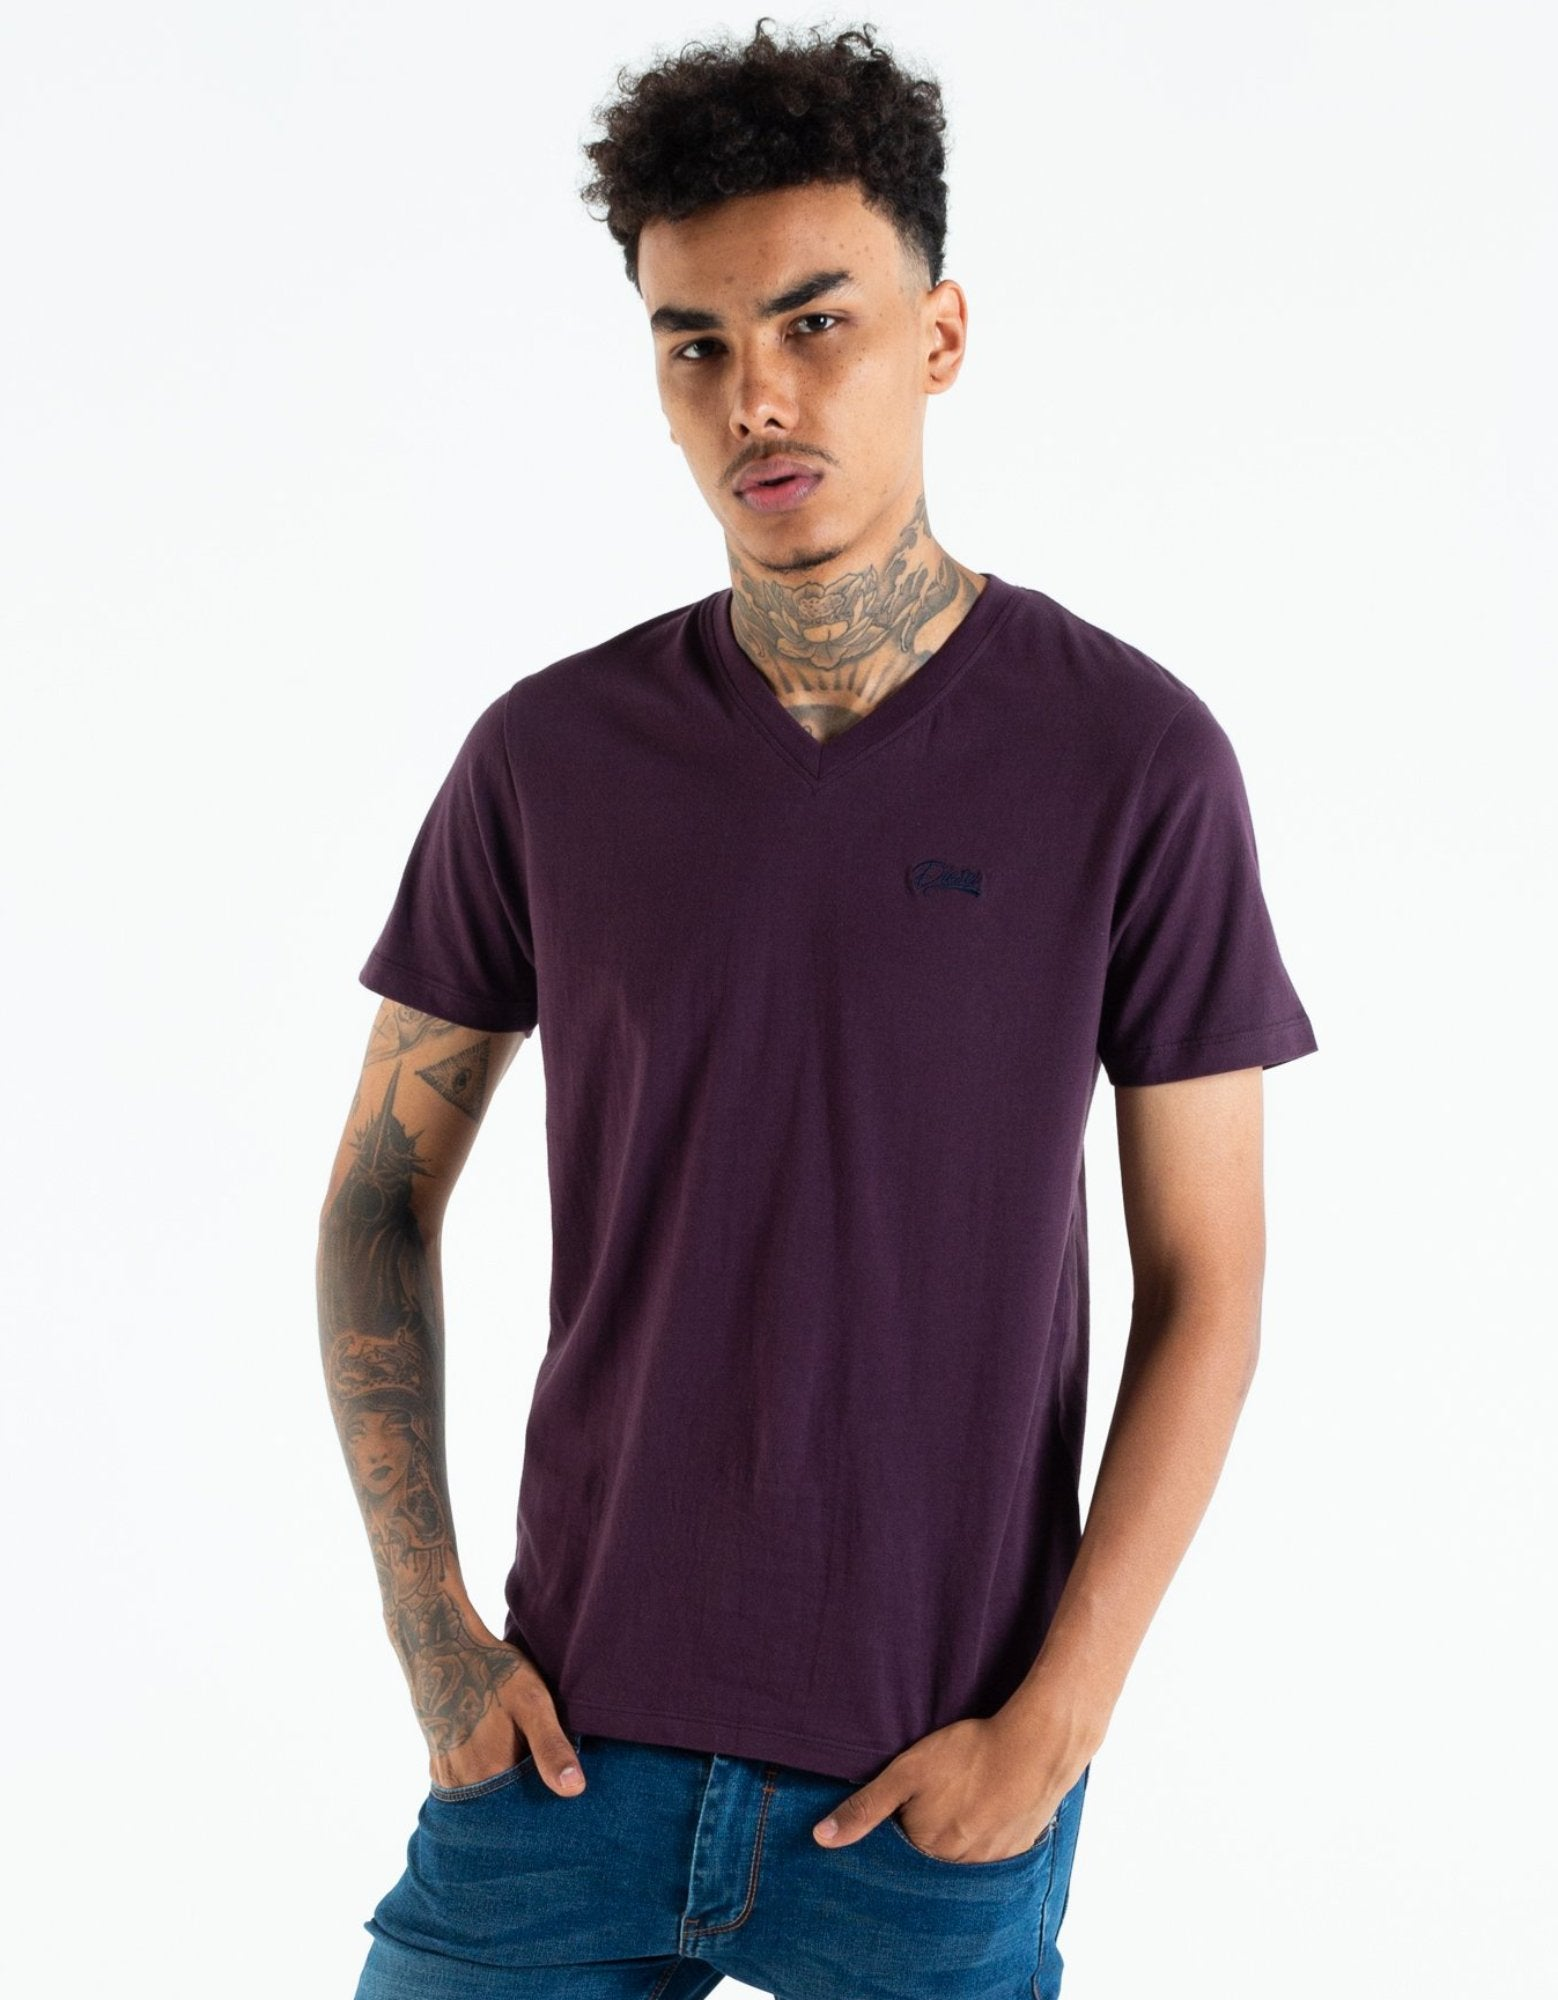 Basic Scott V Neck Tee Black Cherry